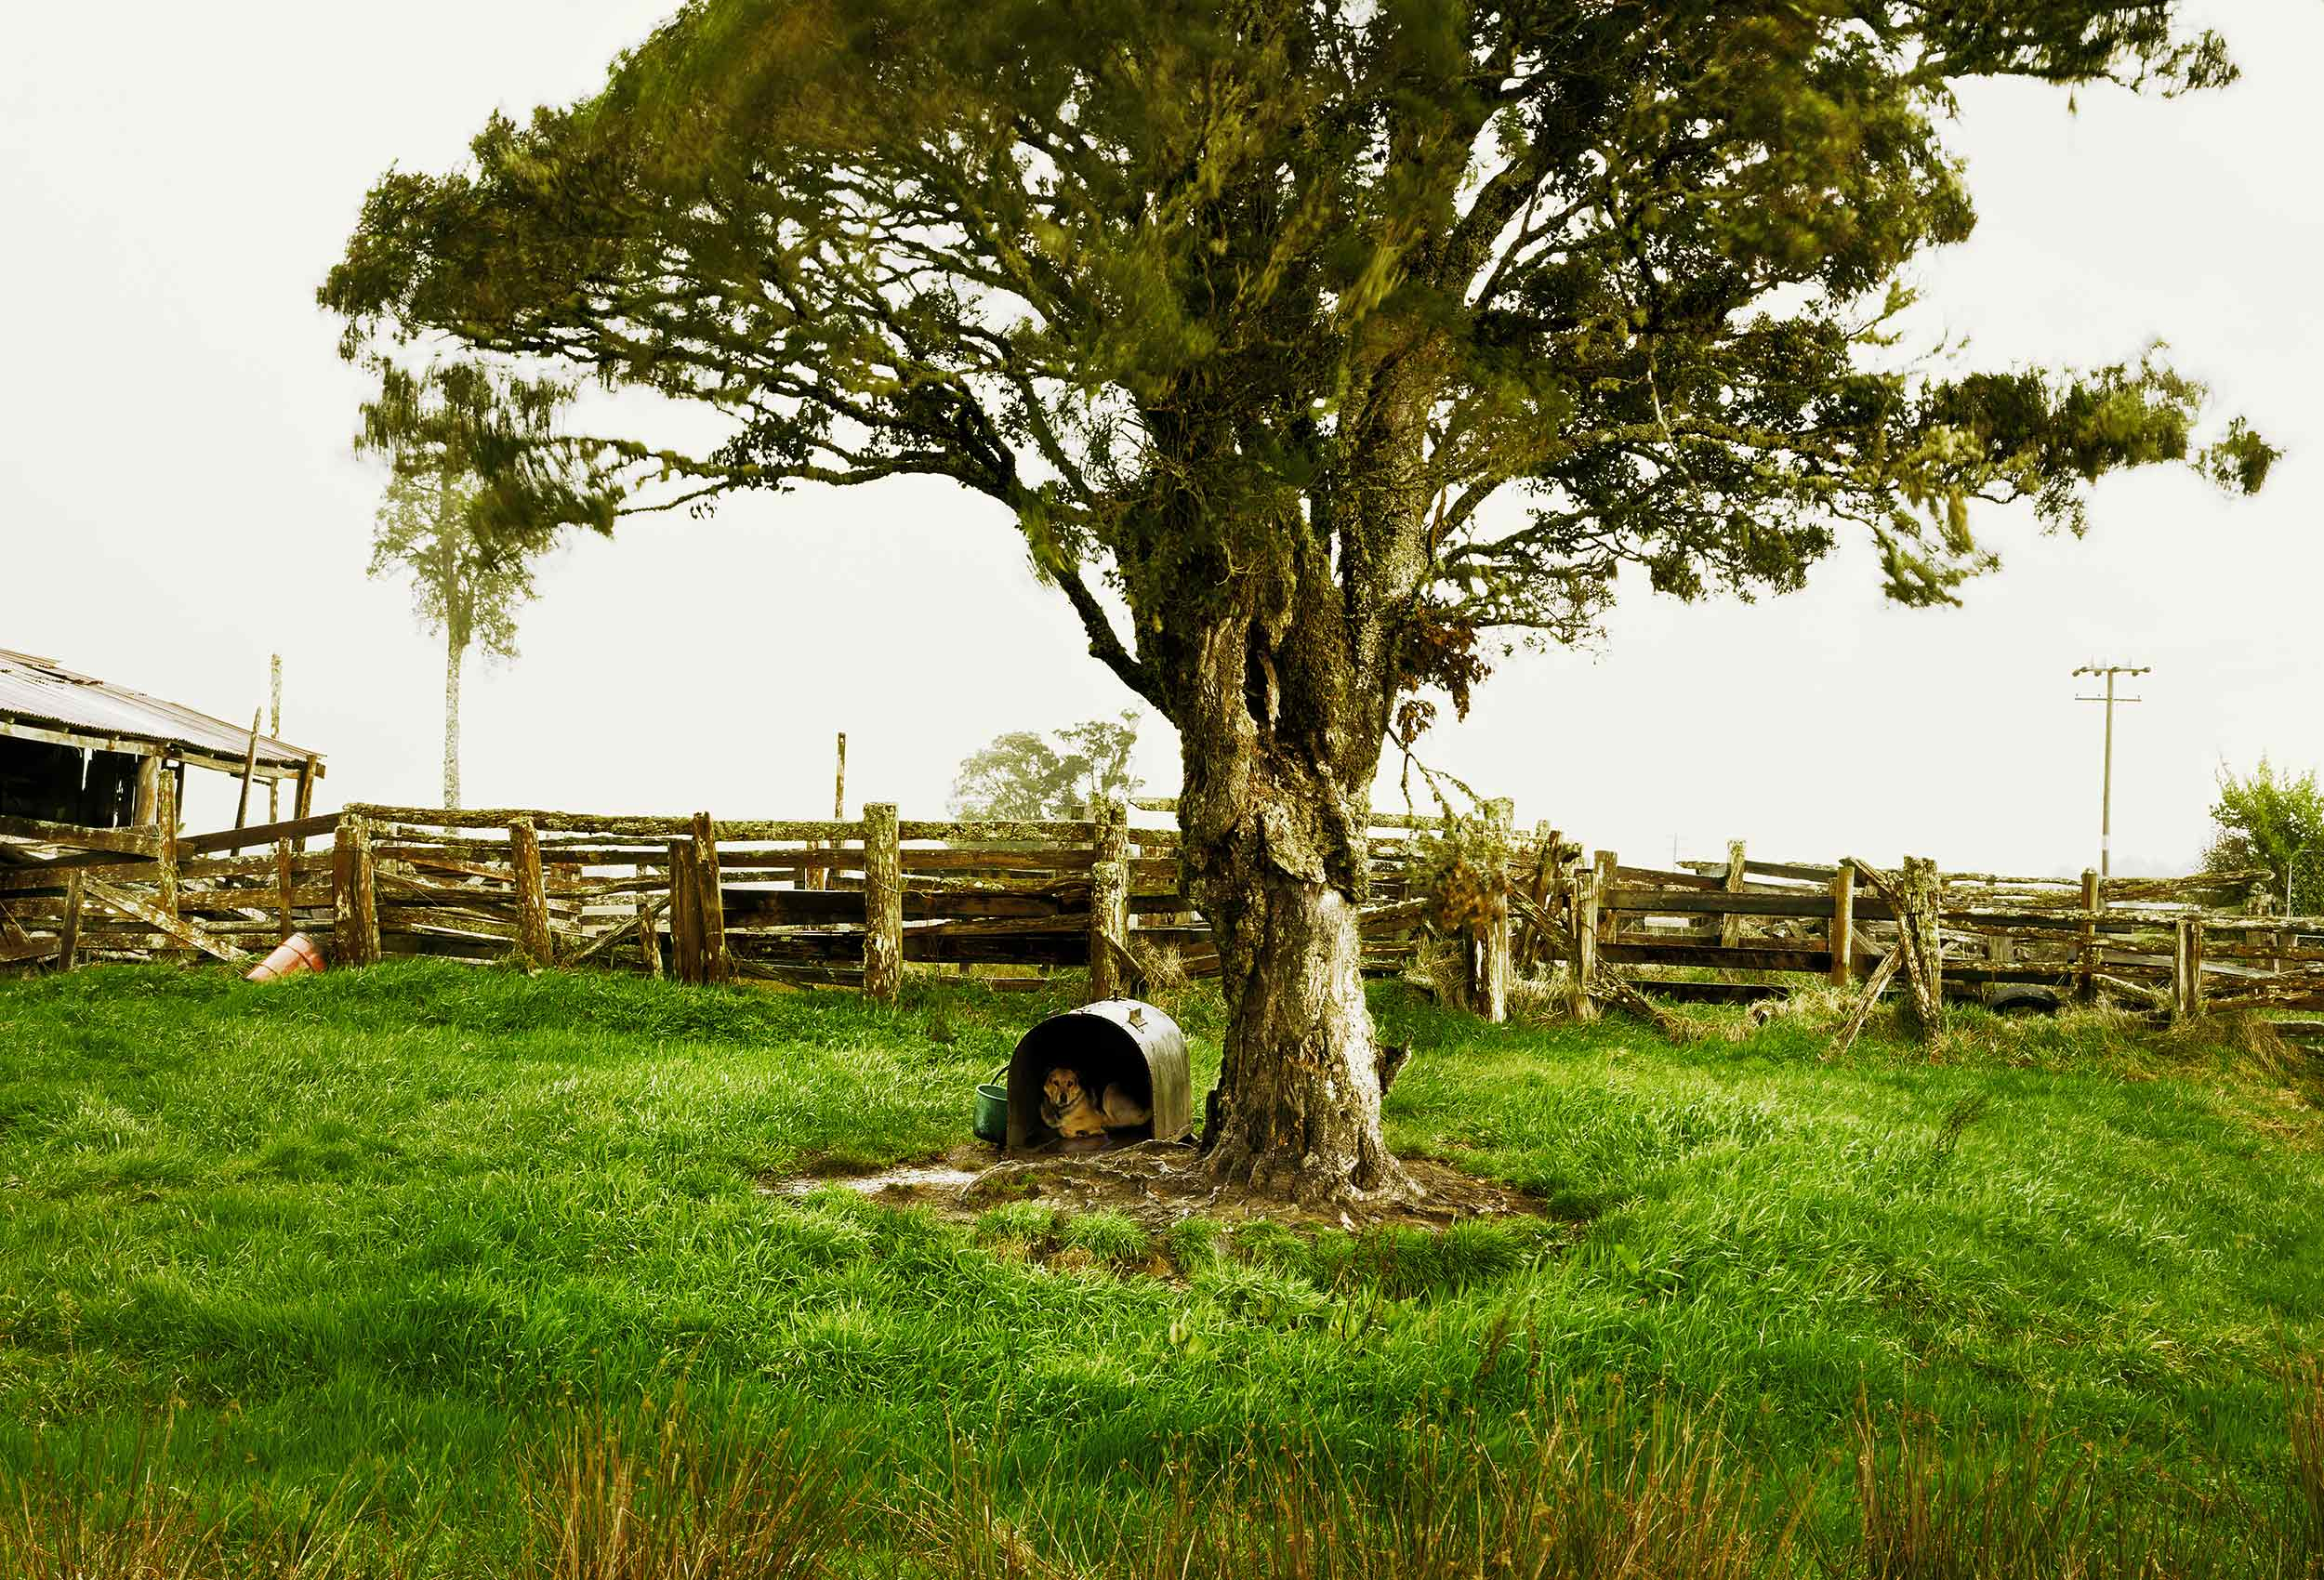 A dog in his dog house under a large tree on the South Island of New Zealand